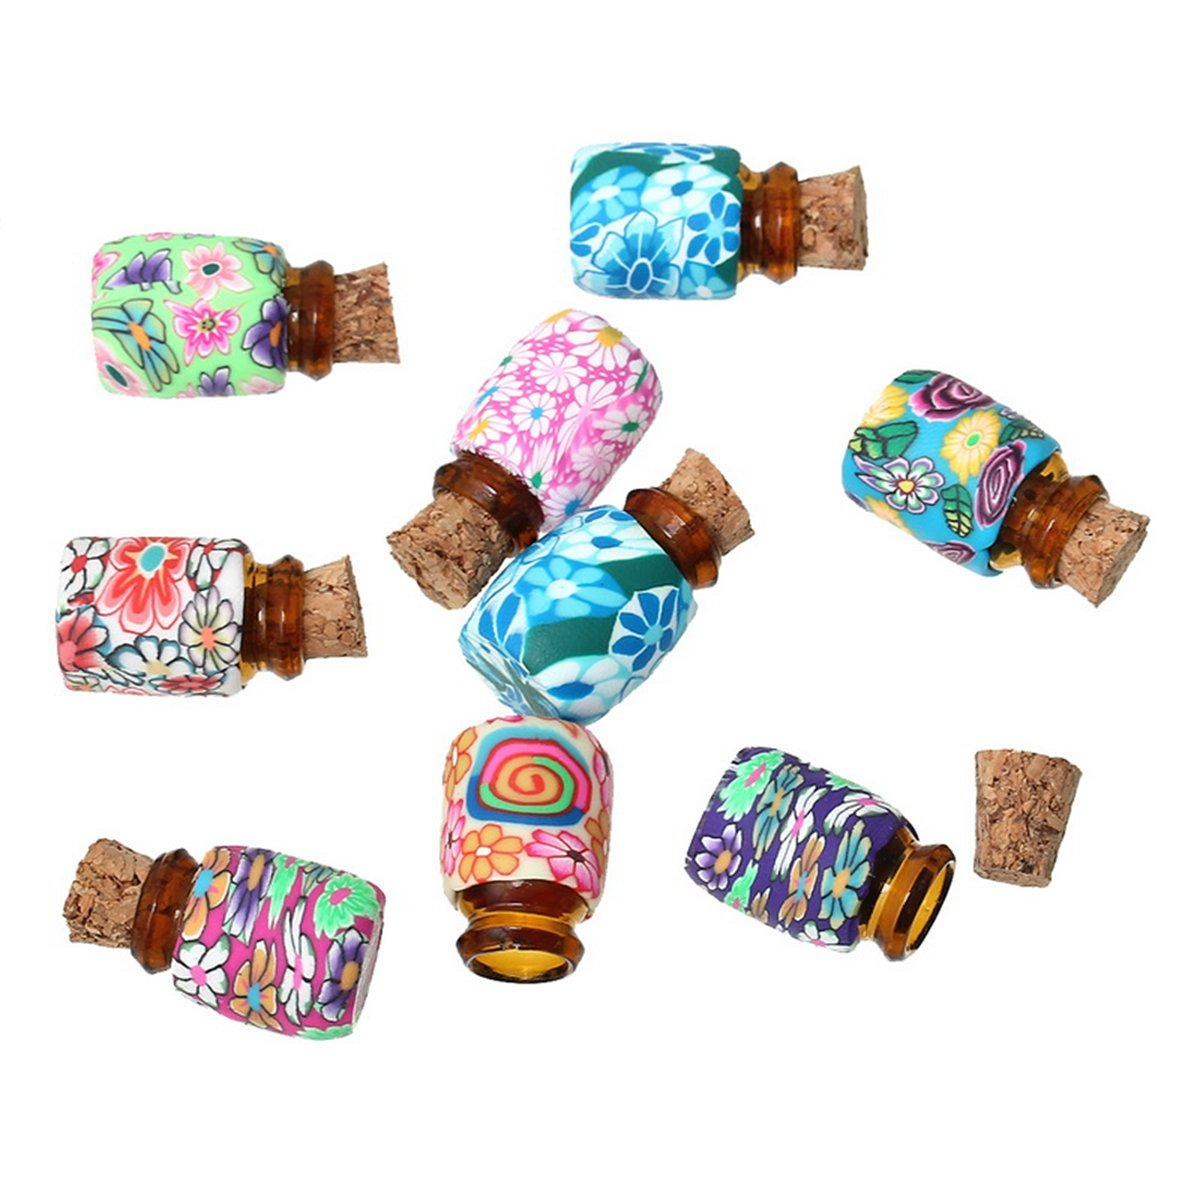 Mixd Color Mini Glass Bottles Vials With Corks for Message Weddings Wish Jewelry Party Favors 10pcs BETY51232